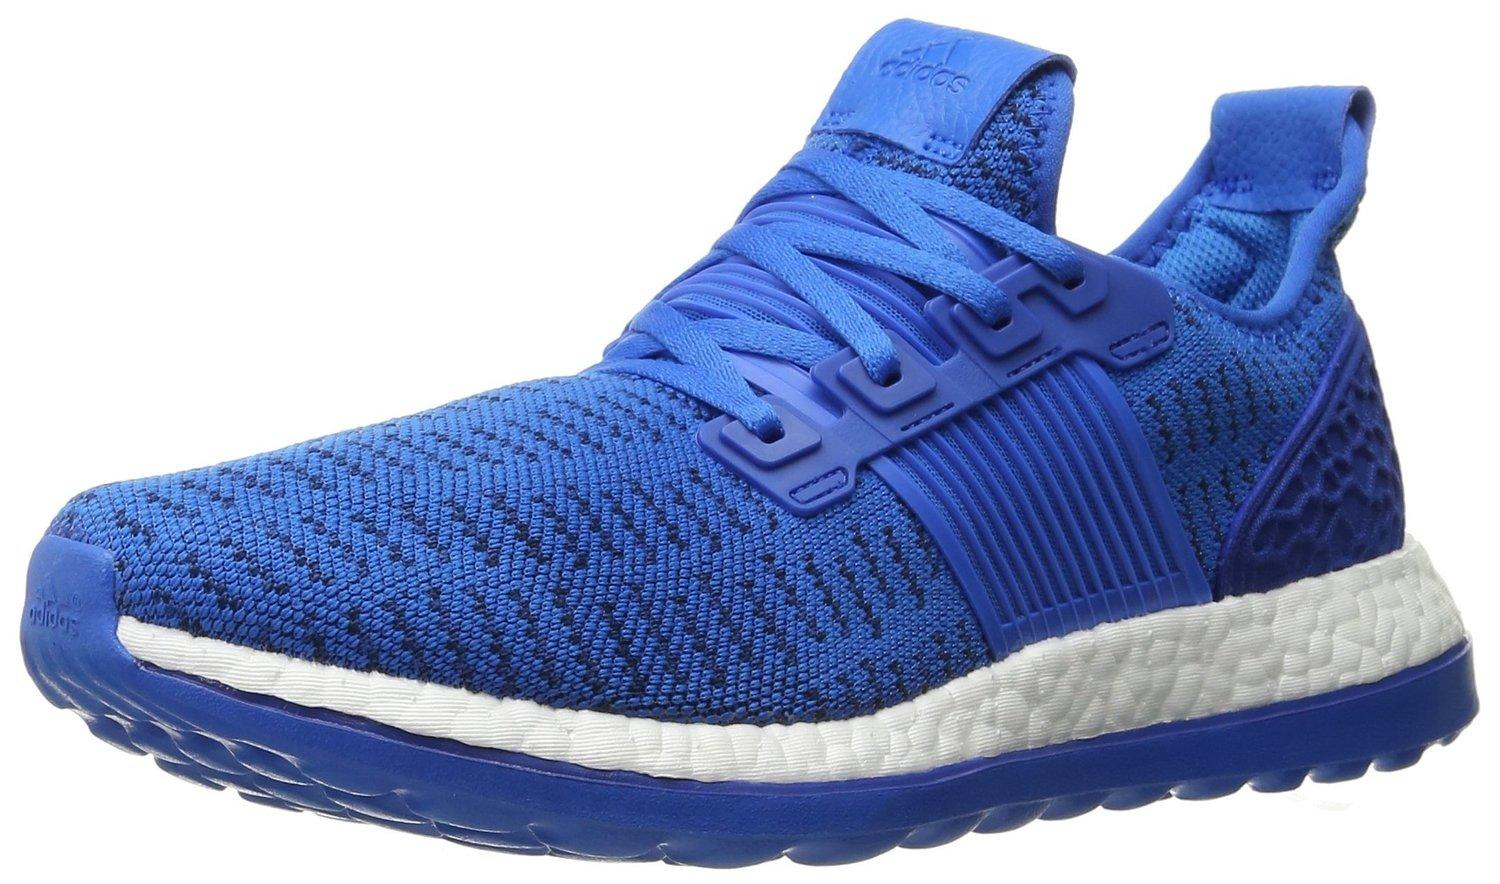 Pure Boost Zg Prime Shoes Review